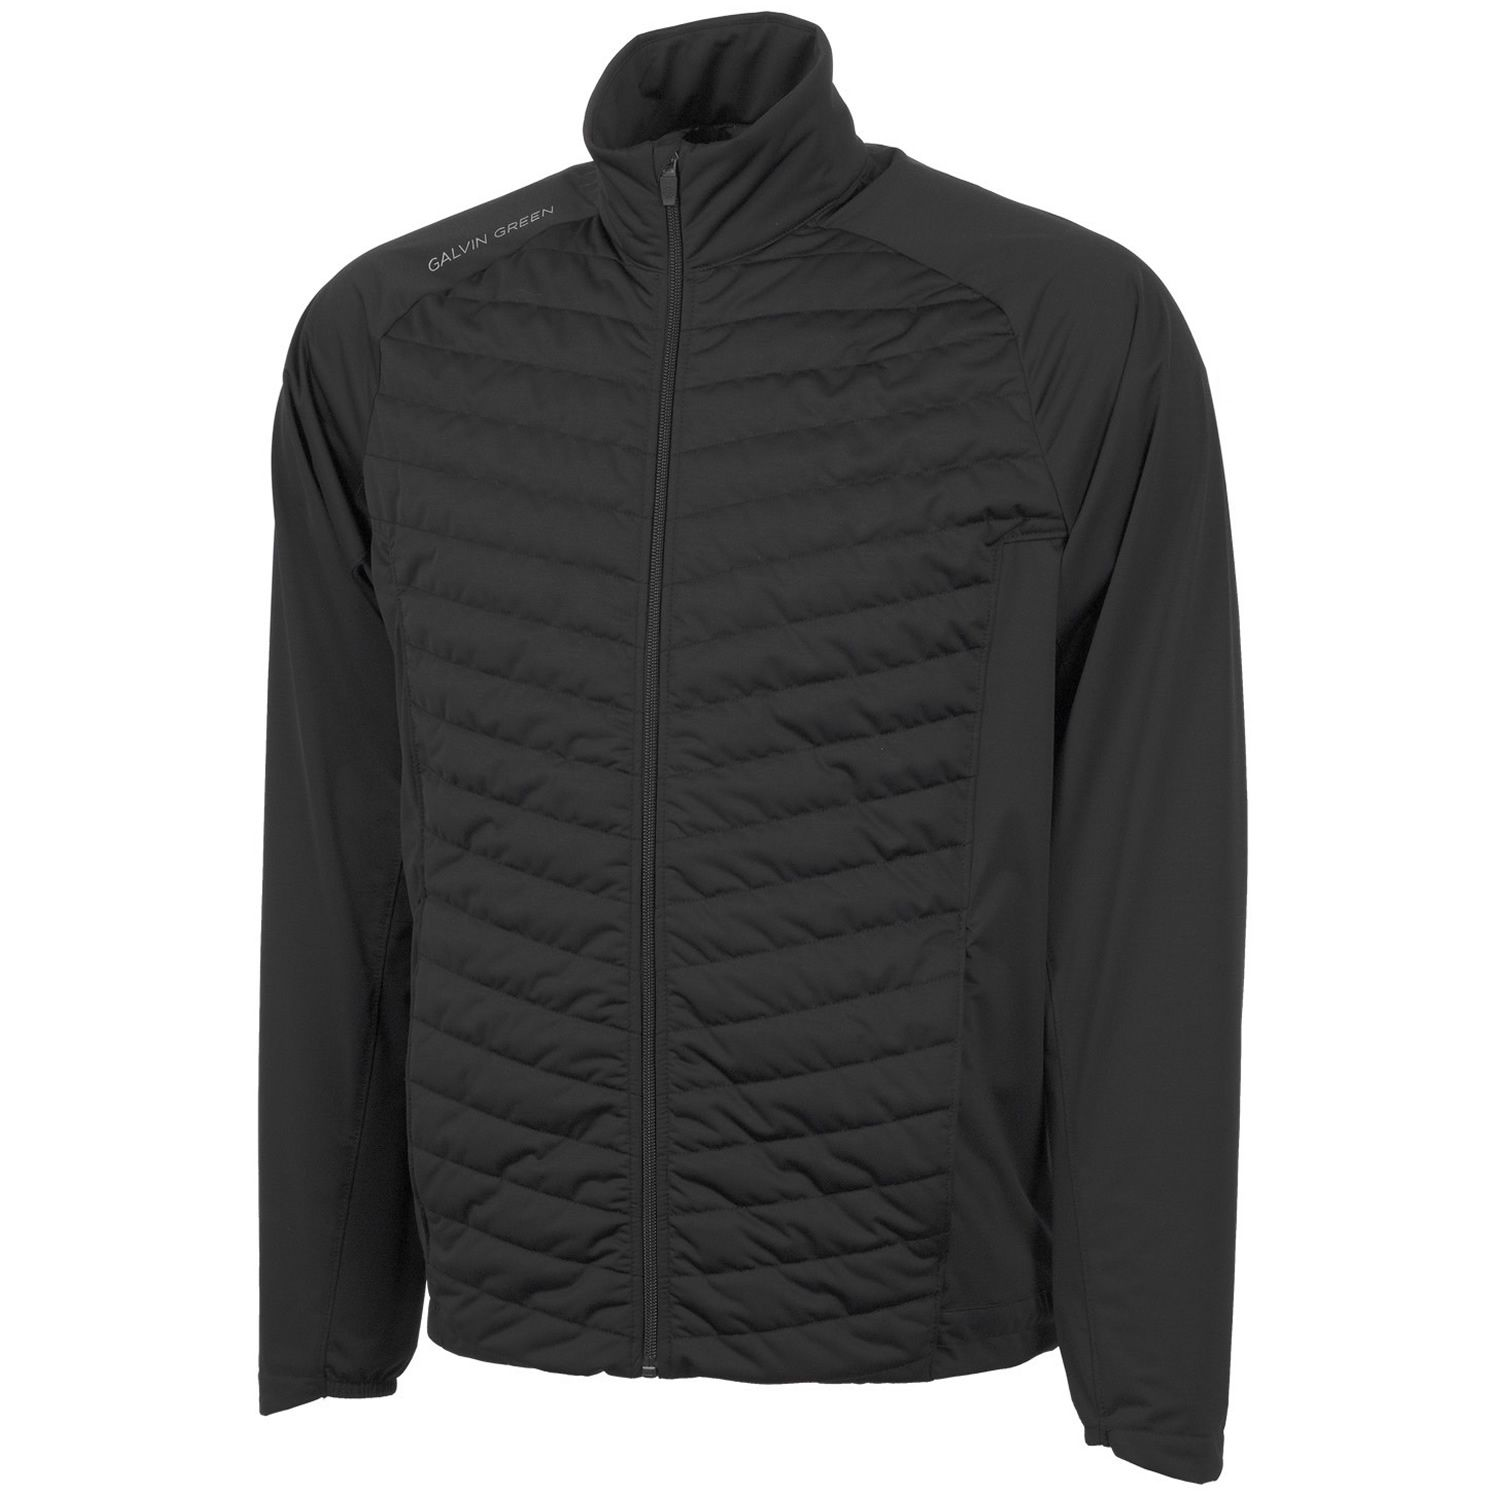 Image of Galvin Green Lanzo Interface-1 Jacket